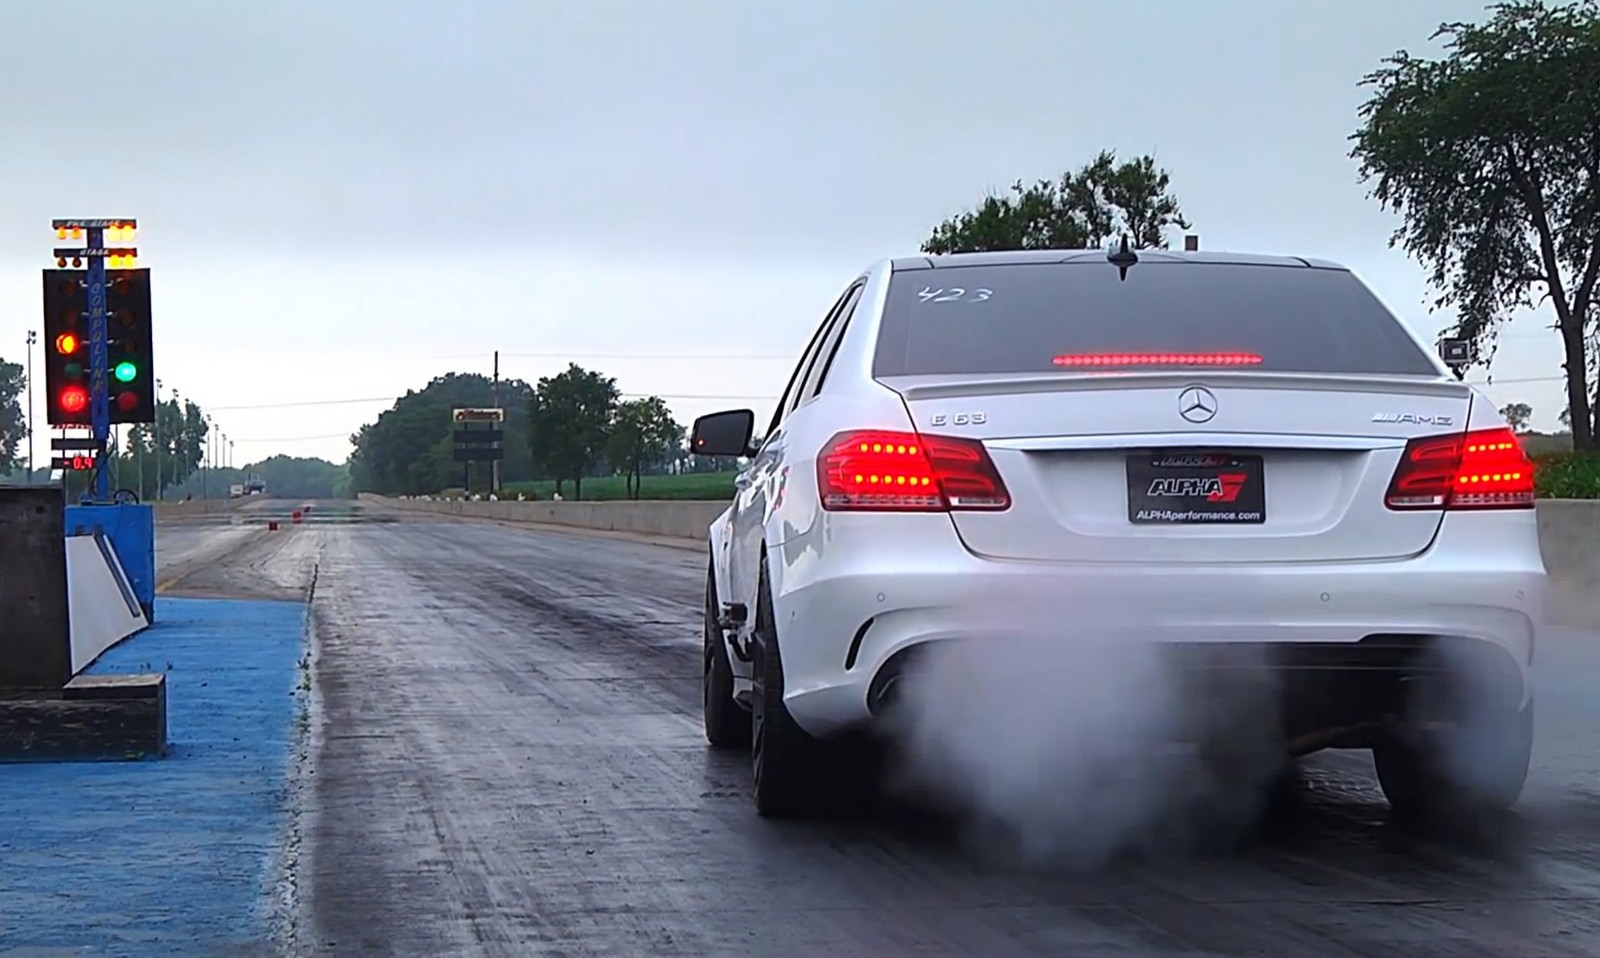 700hp Mercedes E63 Amg S Awd Runs In The 10 S With Ams Tune And